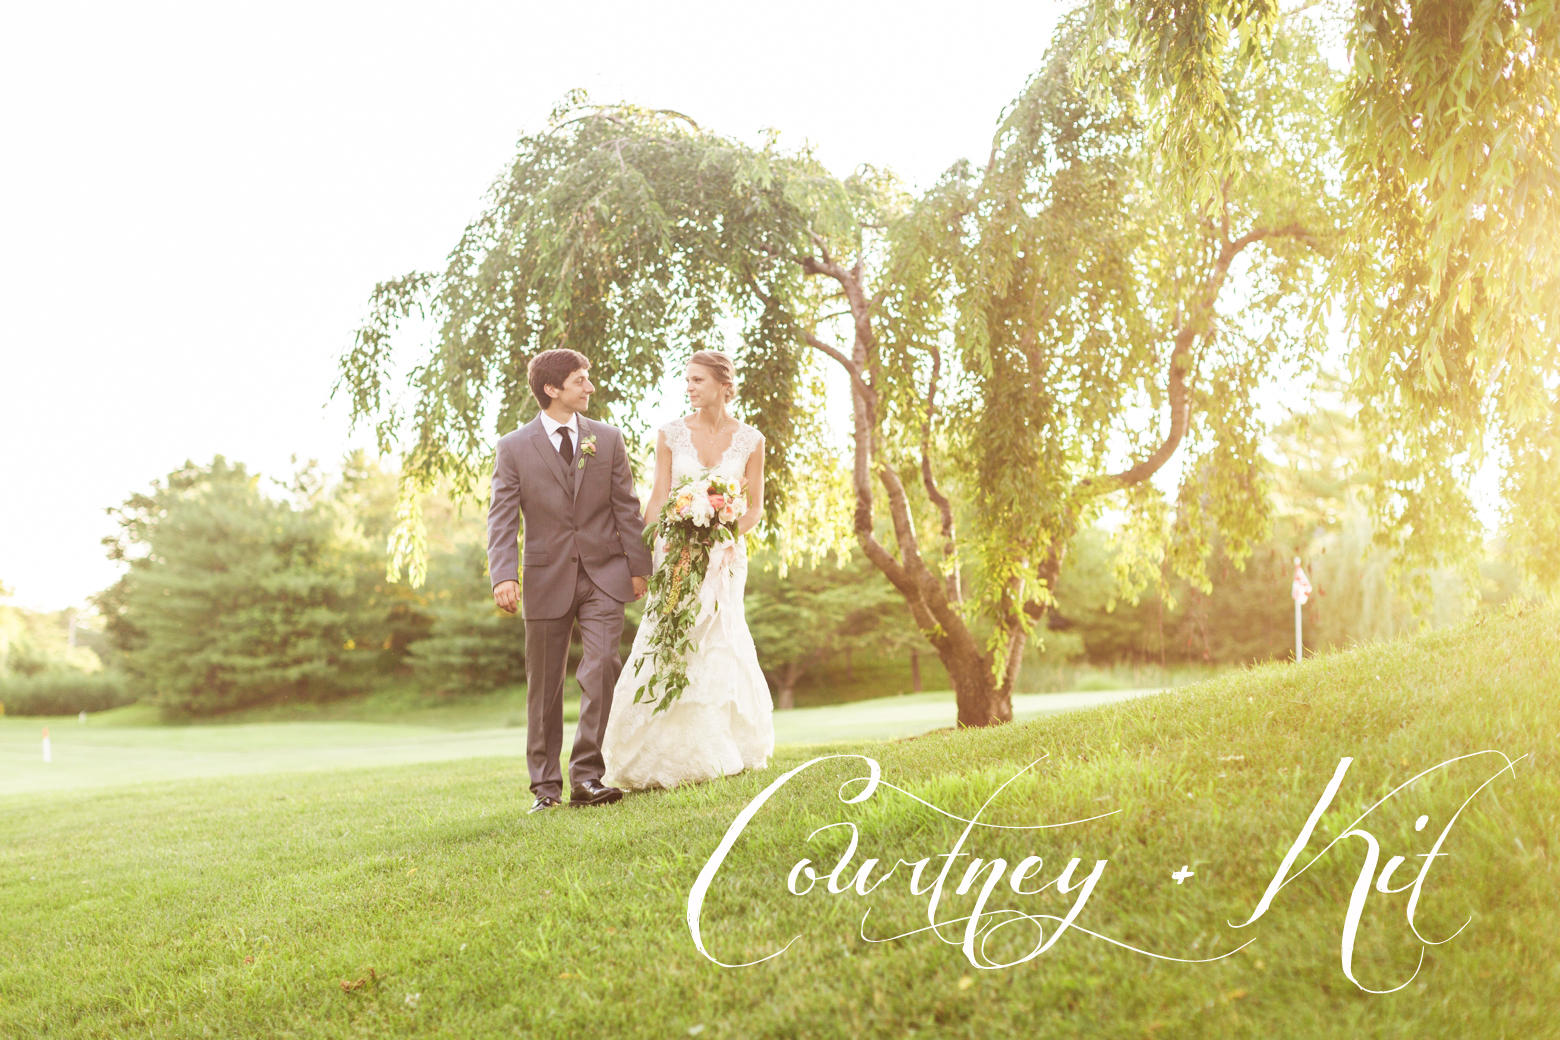 Courtney-Kit-Romantic-Philadelphia-Fine-Art-Wedding-Photographer_0065